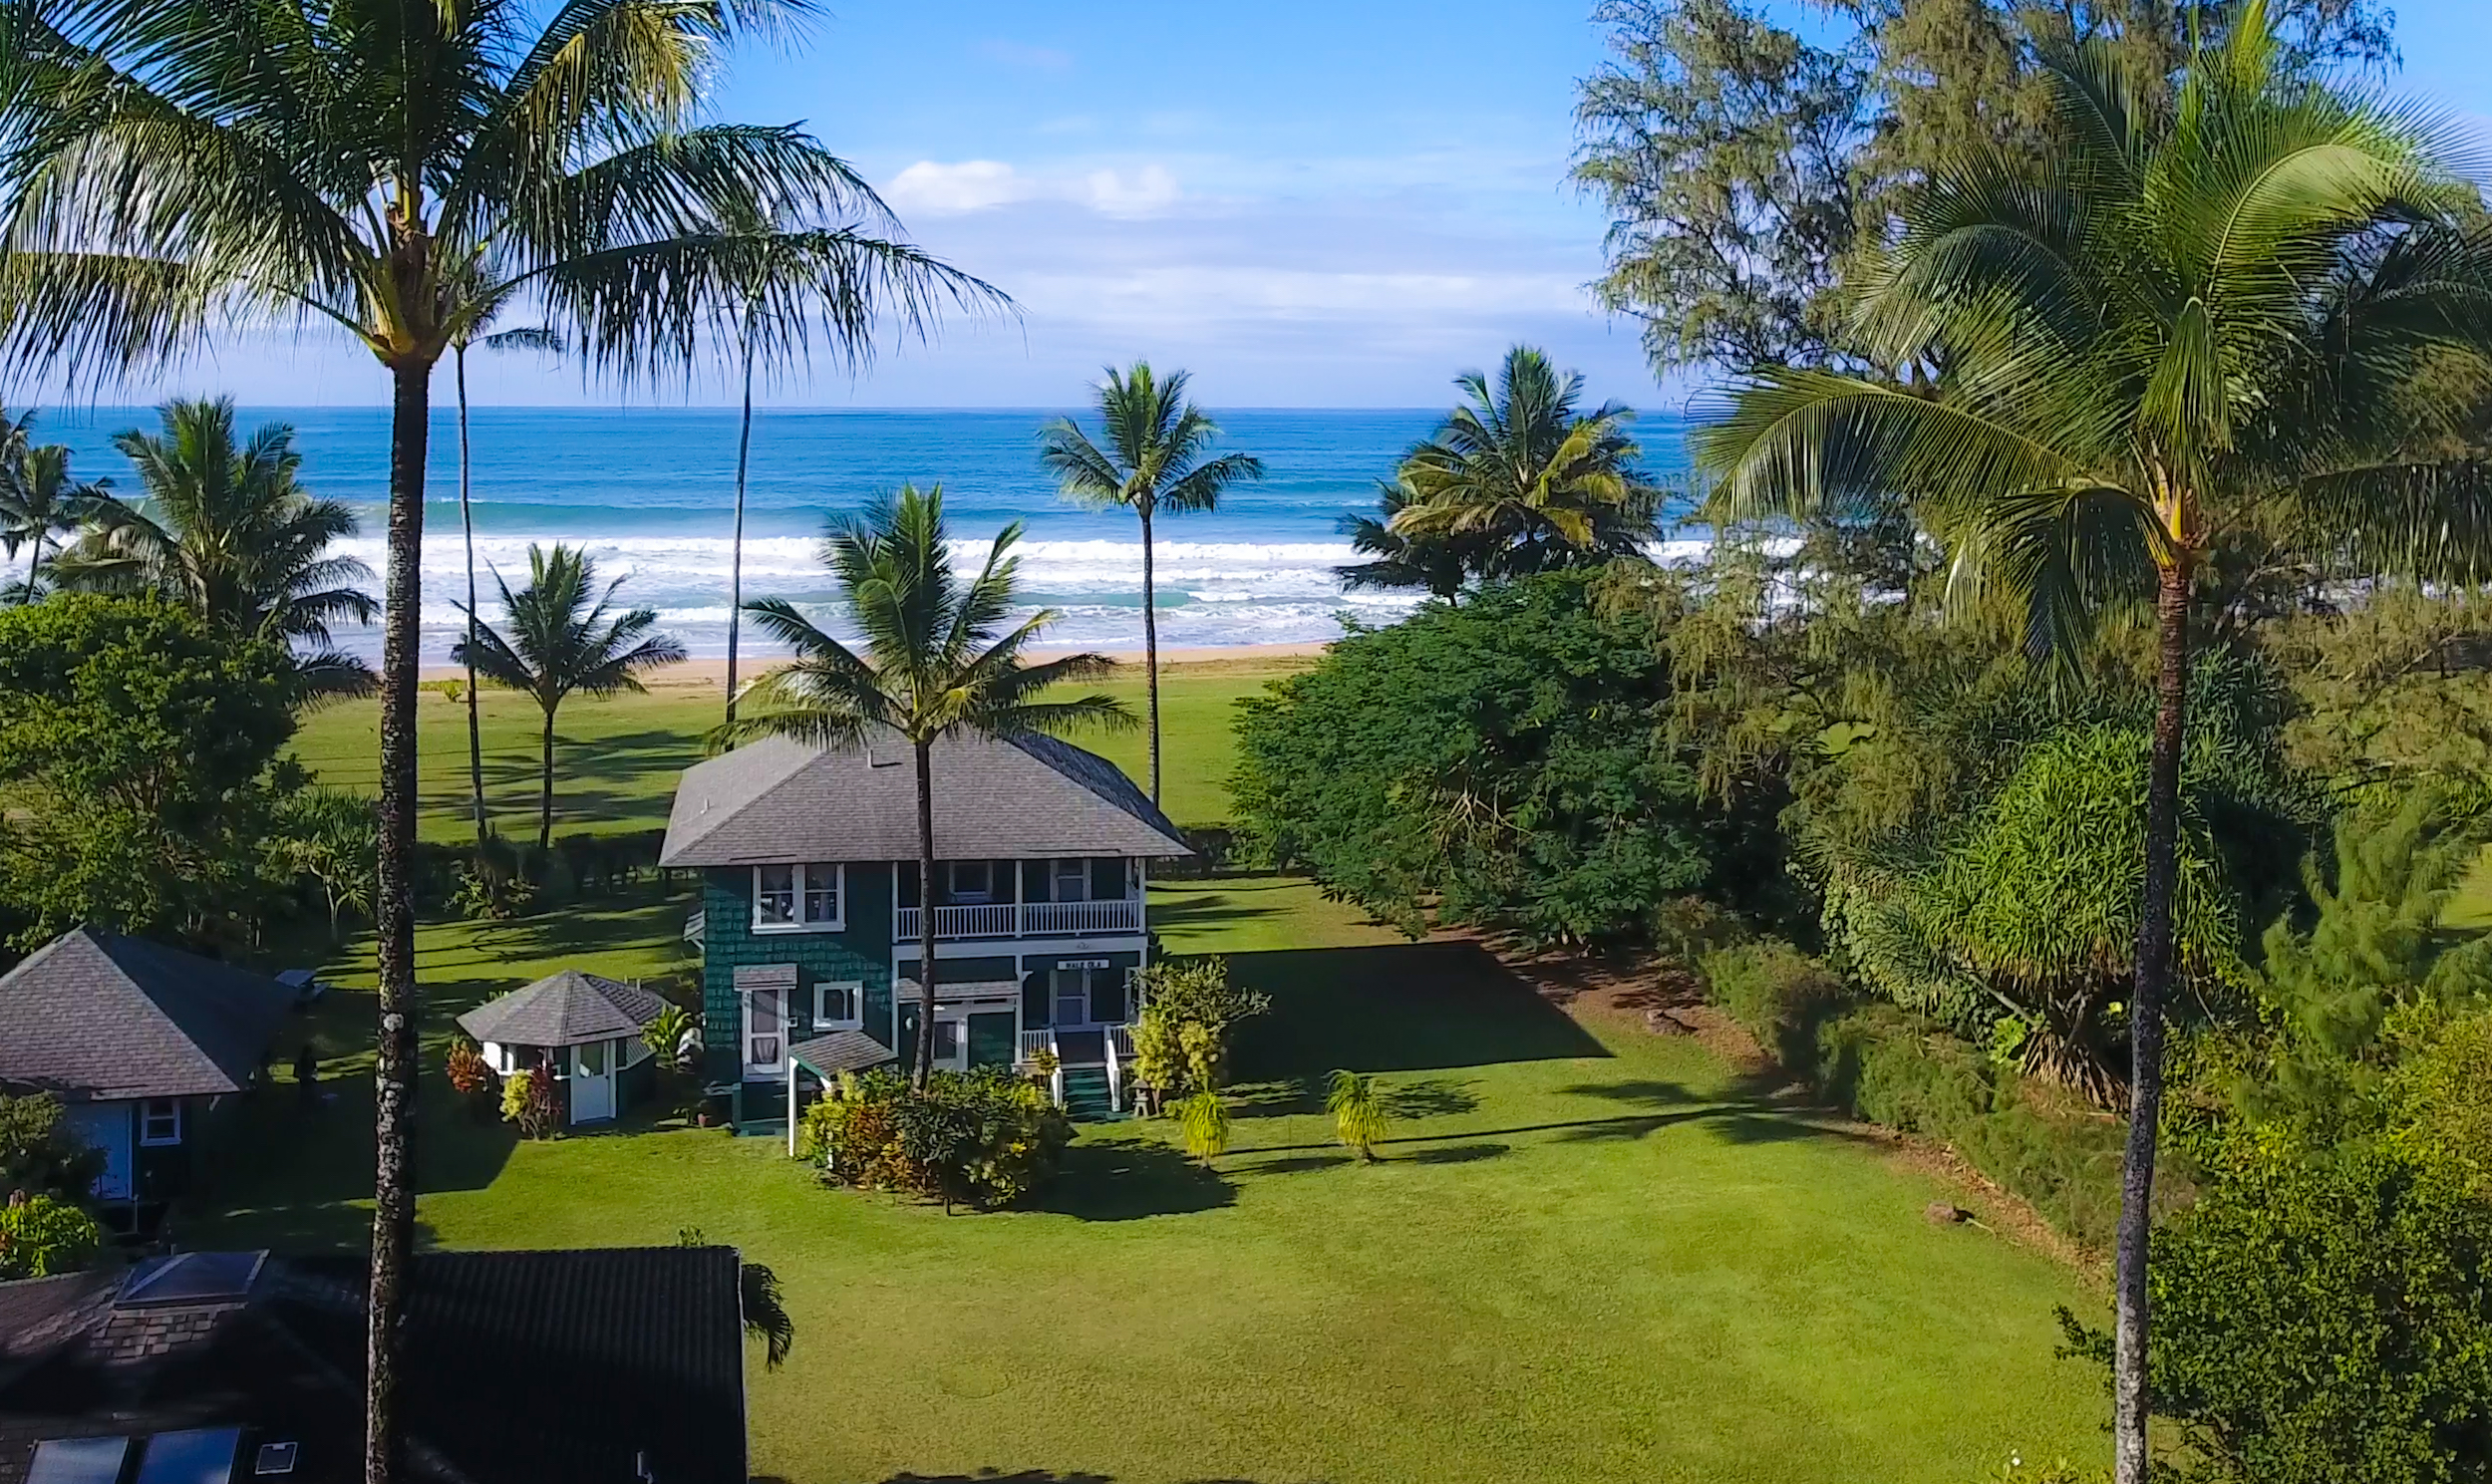 Single Family Home for Sale at Hale Ola 5372 Weke Rd Hanalei, Hawaii, 96714 United States